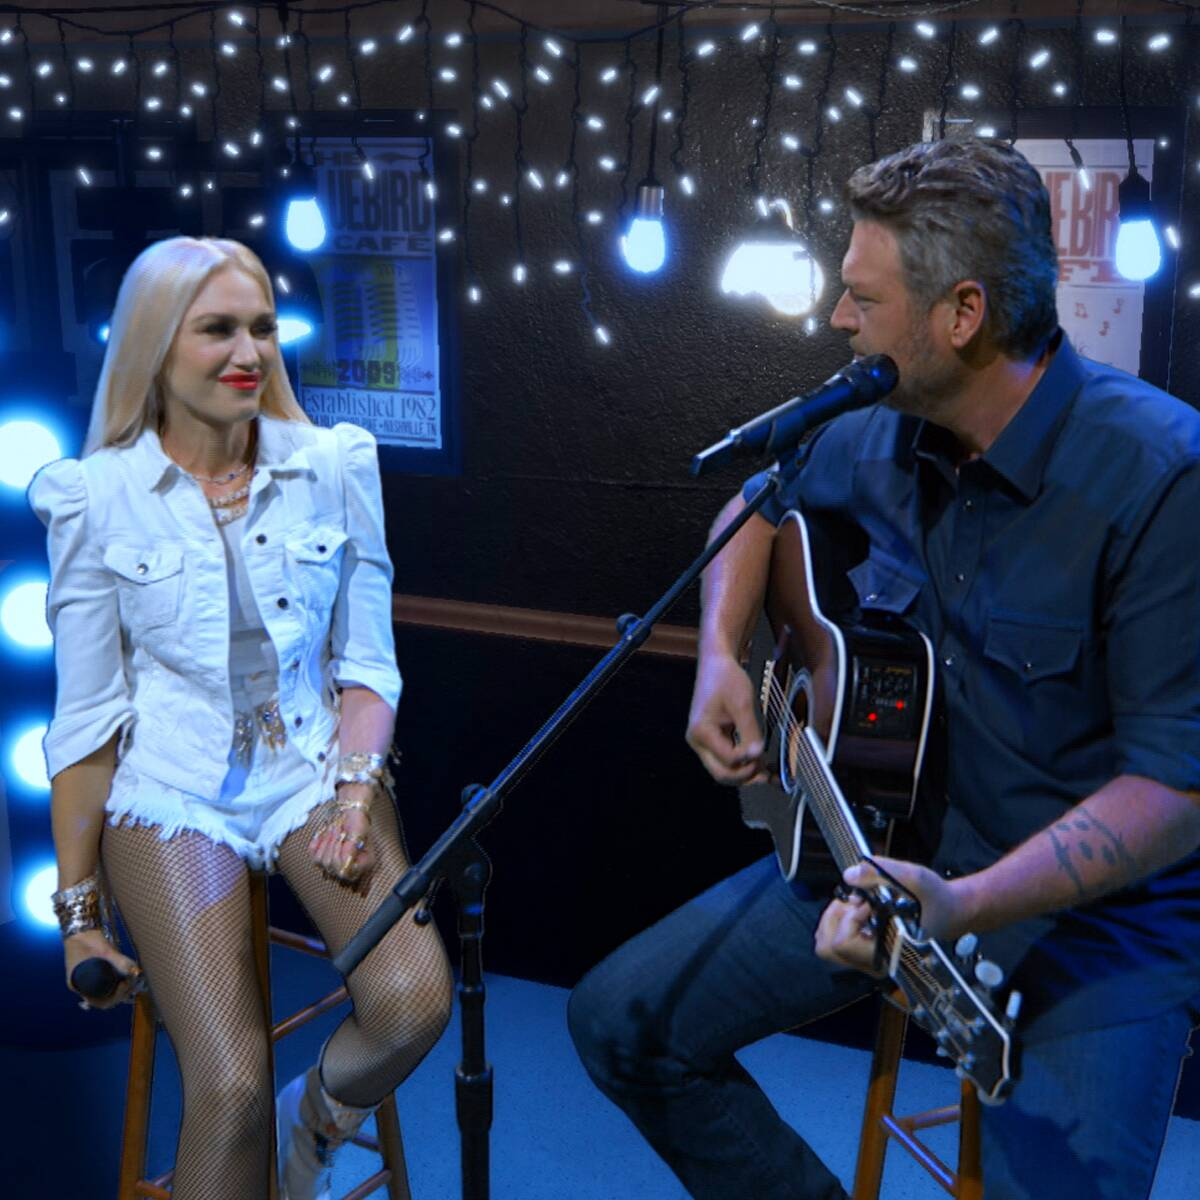 Gwen Stefani and Blake Shelton's Love Takes Center Stage at ACM Awards